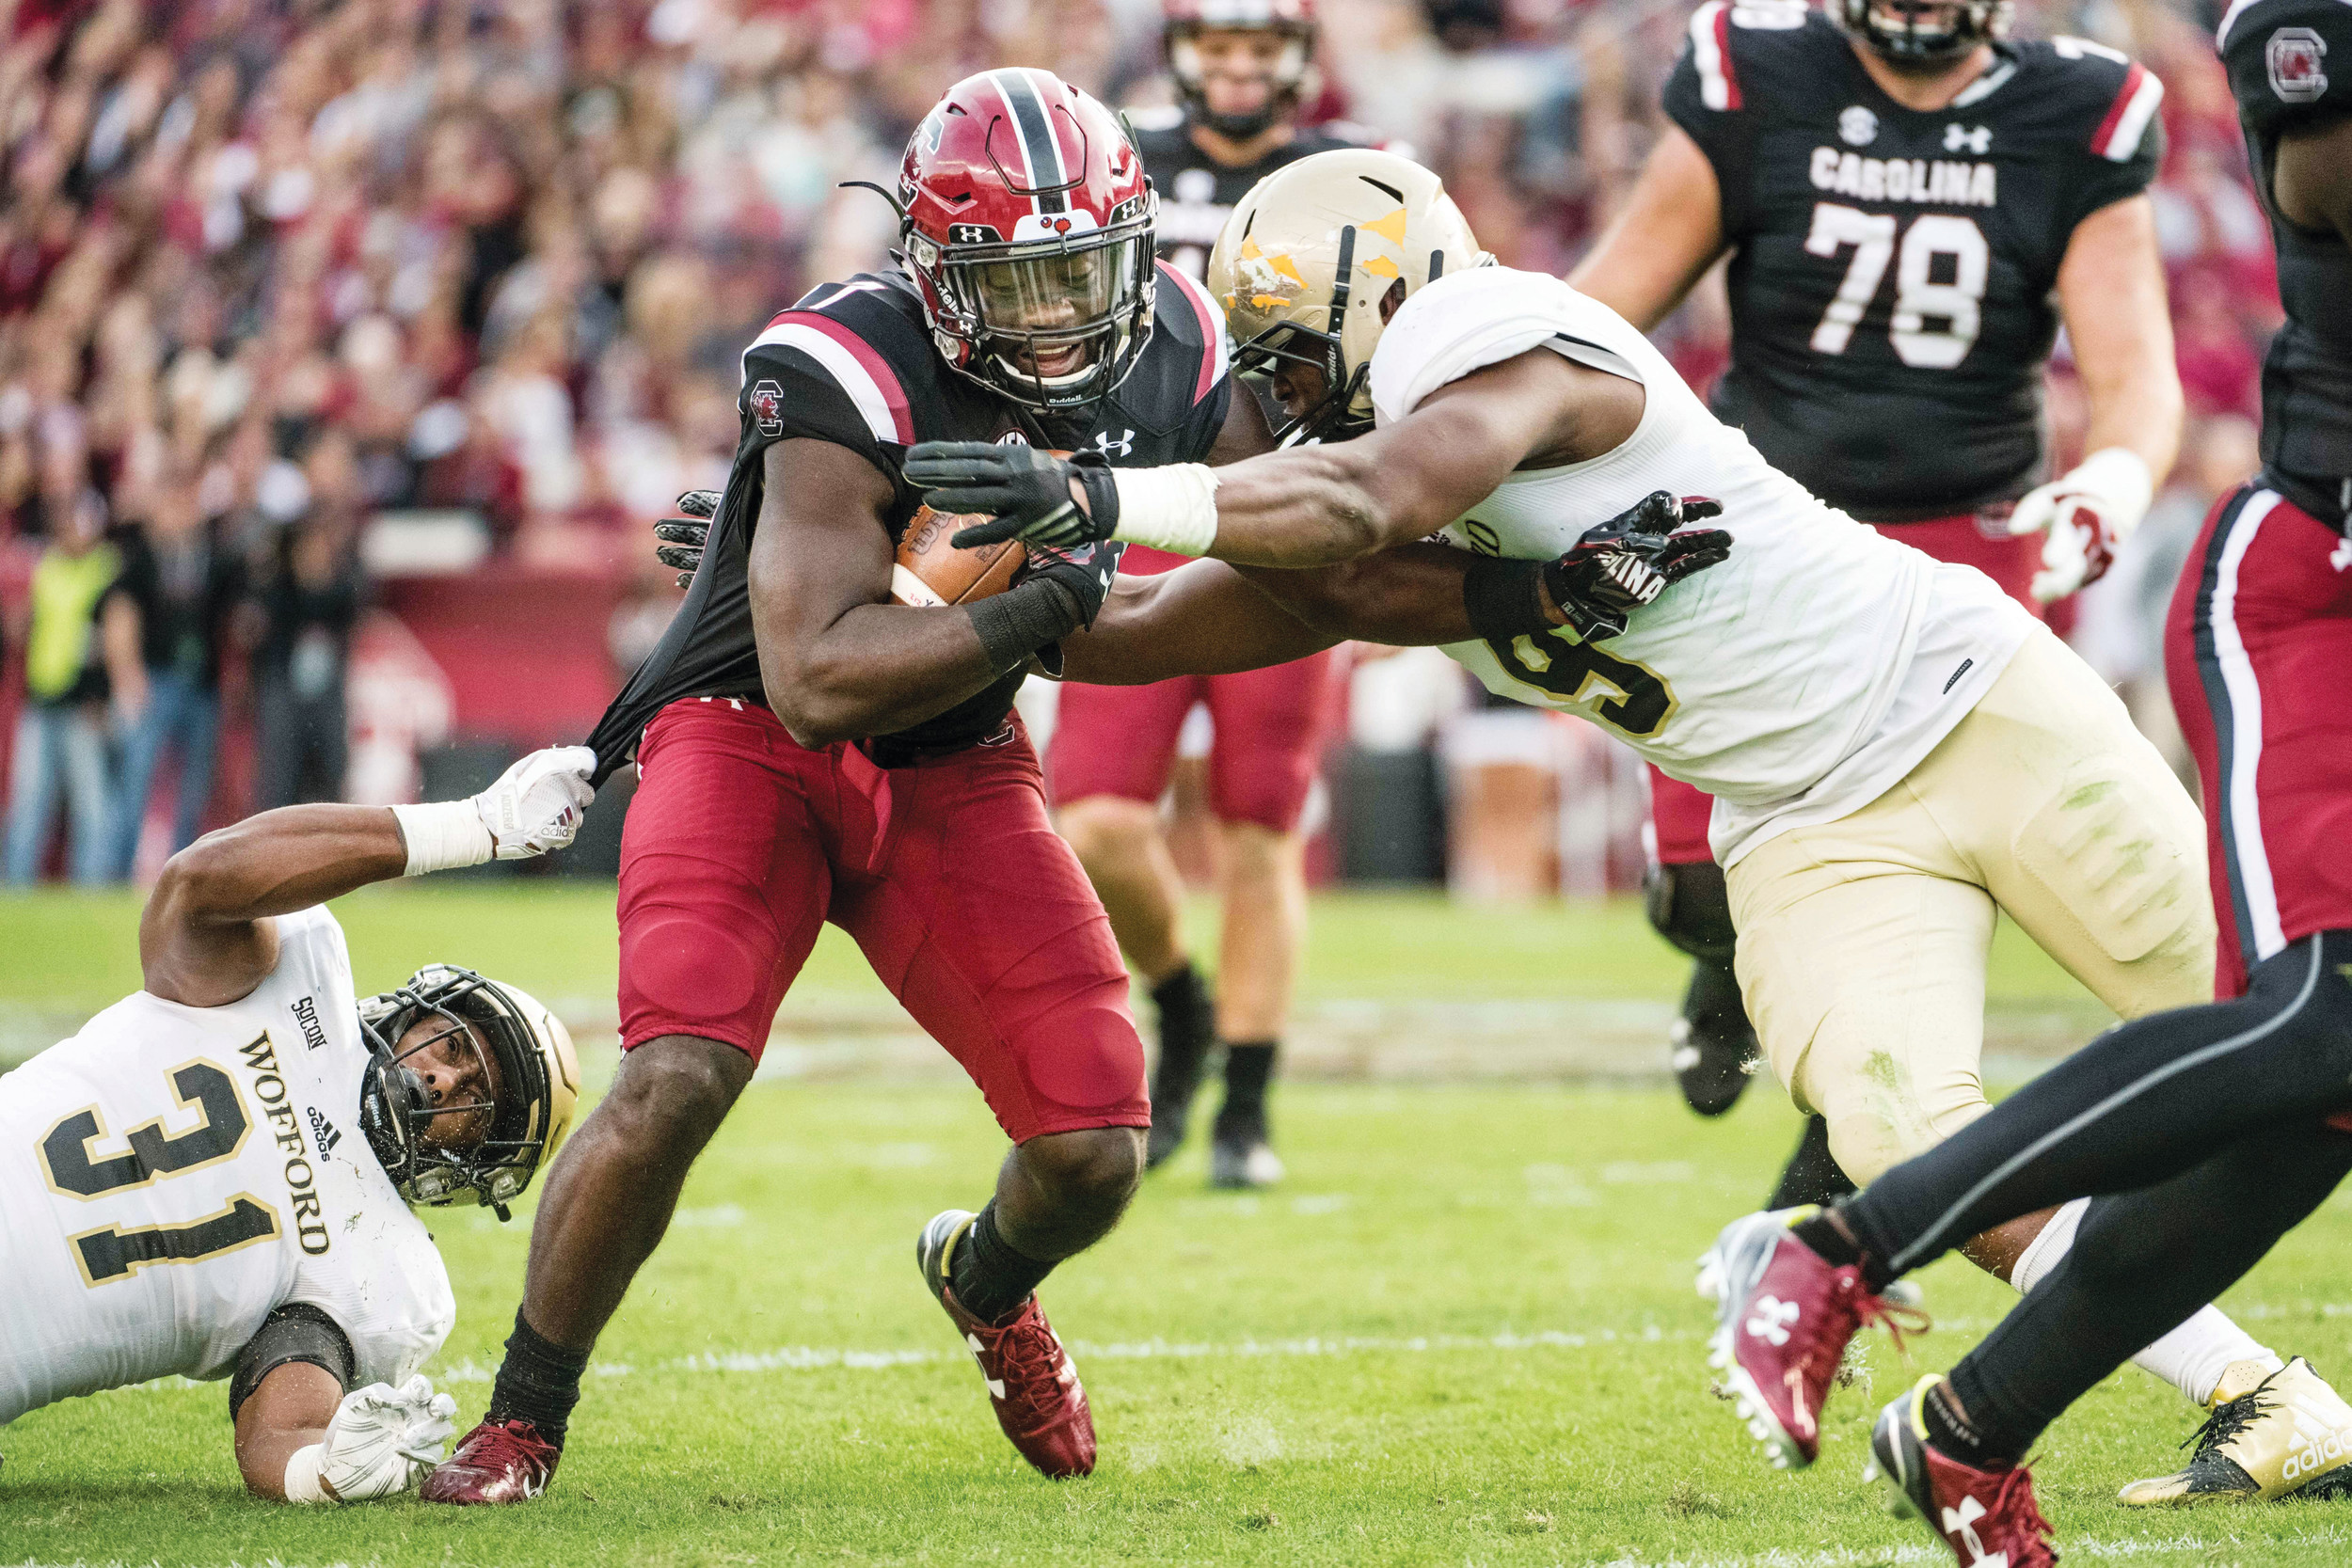 South Carolina running back Ty'Son Williams (27) carries the ball against Wofford safety Malik Rivera (31) and Terrance Morris (9) during the Gamecocks' 31-10 victory on Saturday in Columbia.